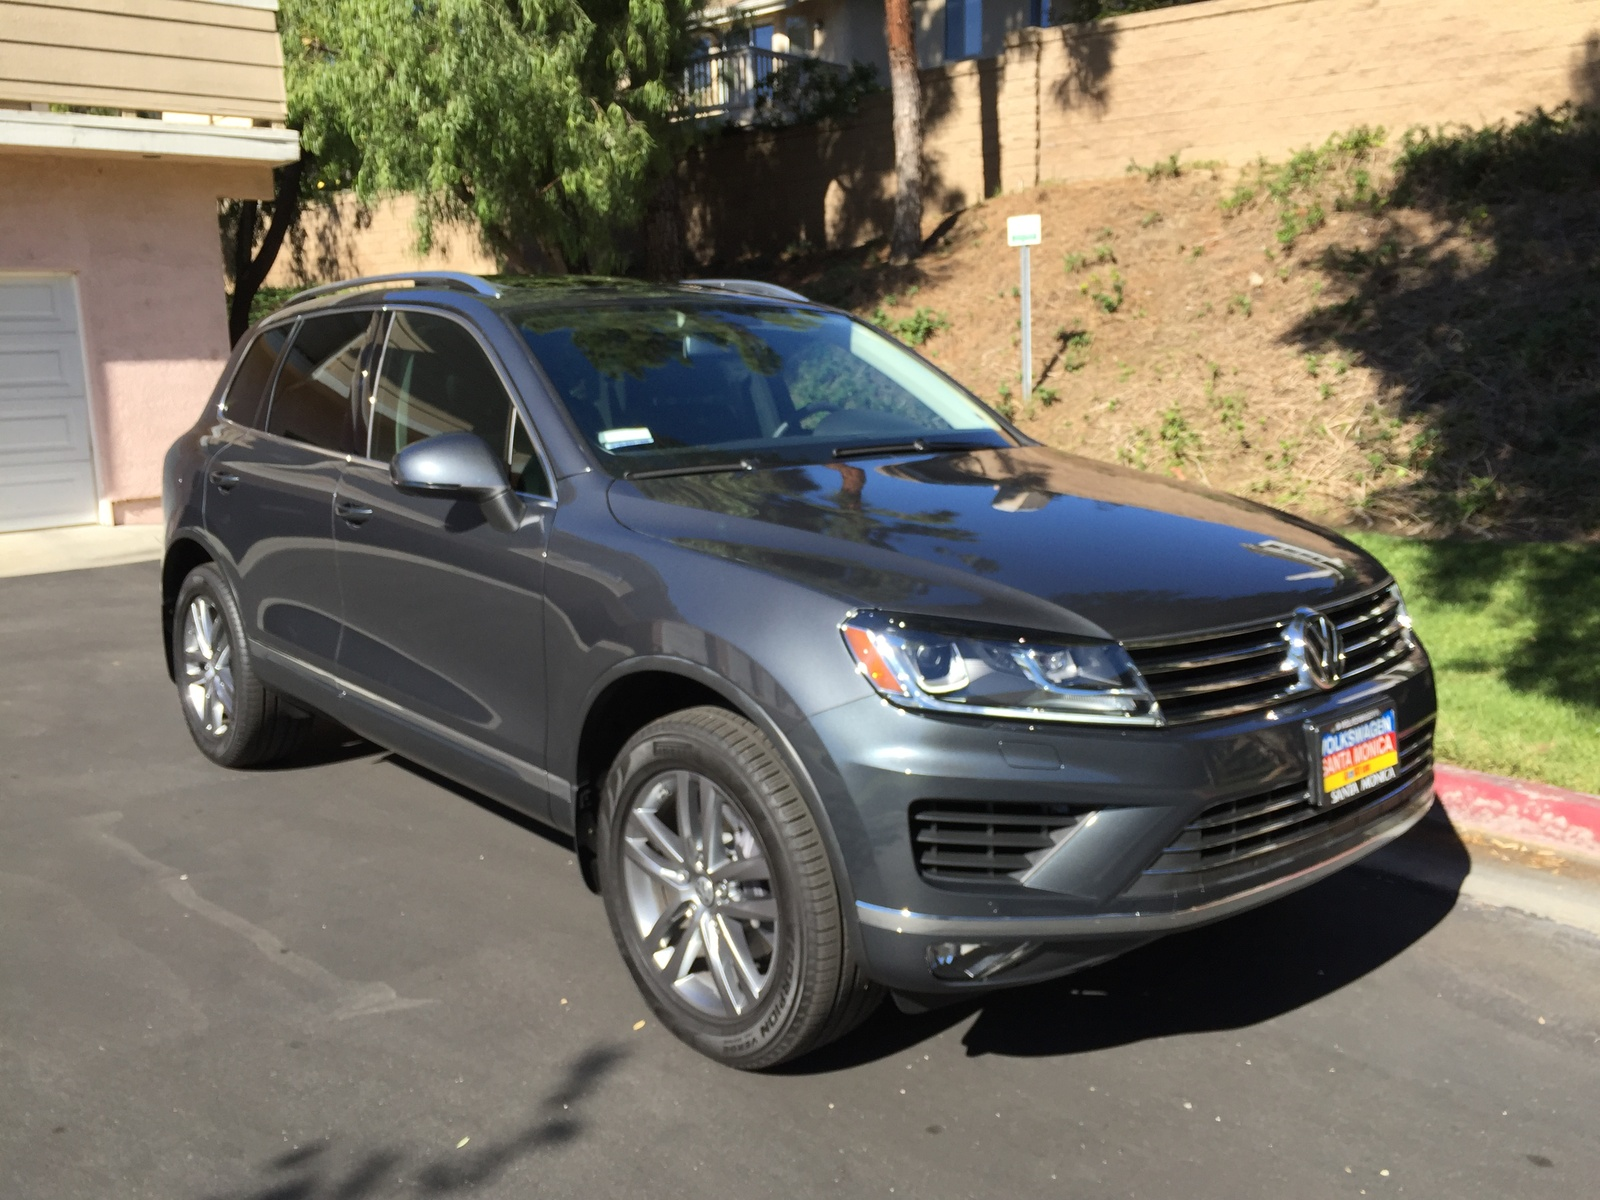 Picture of 2015 Volkswagen Touareg VR6 Executive